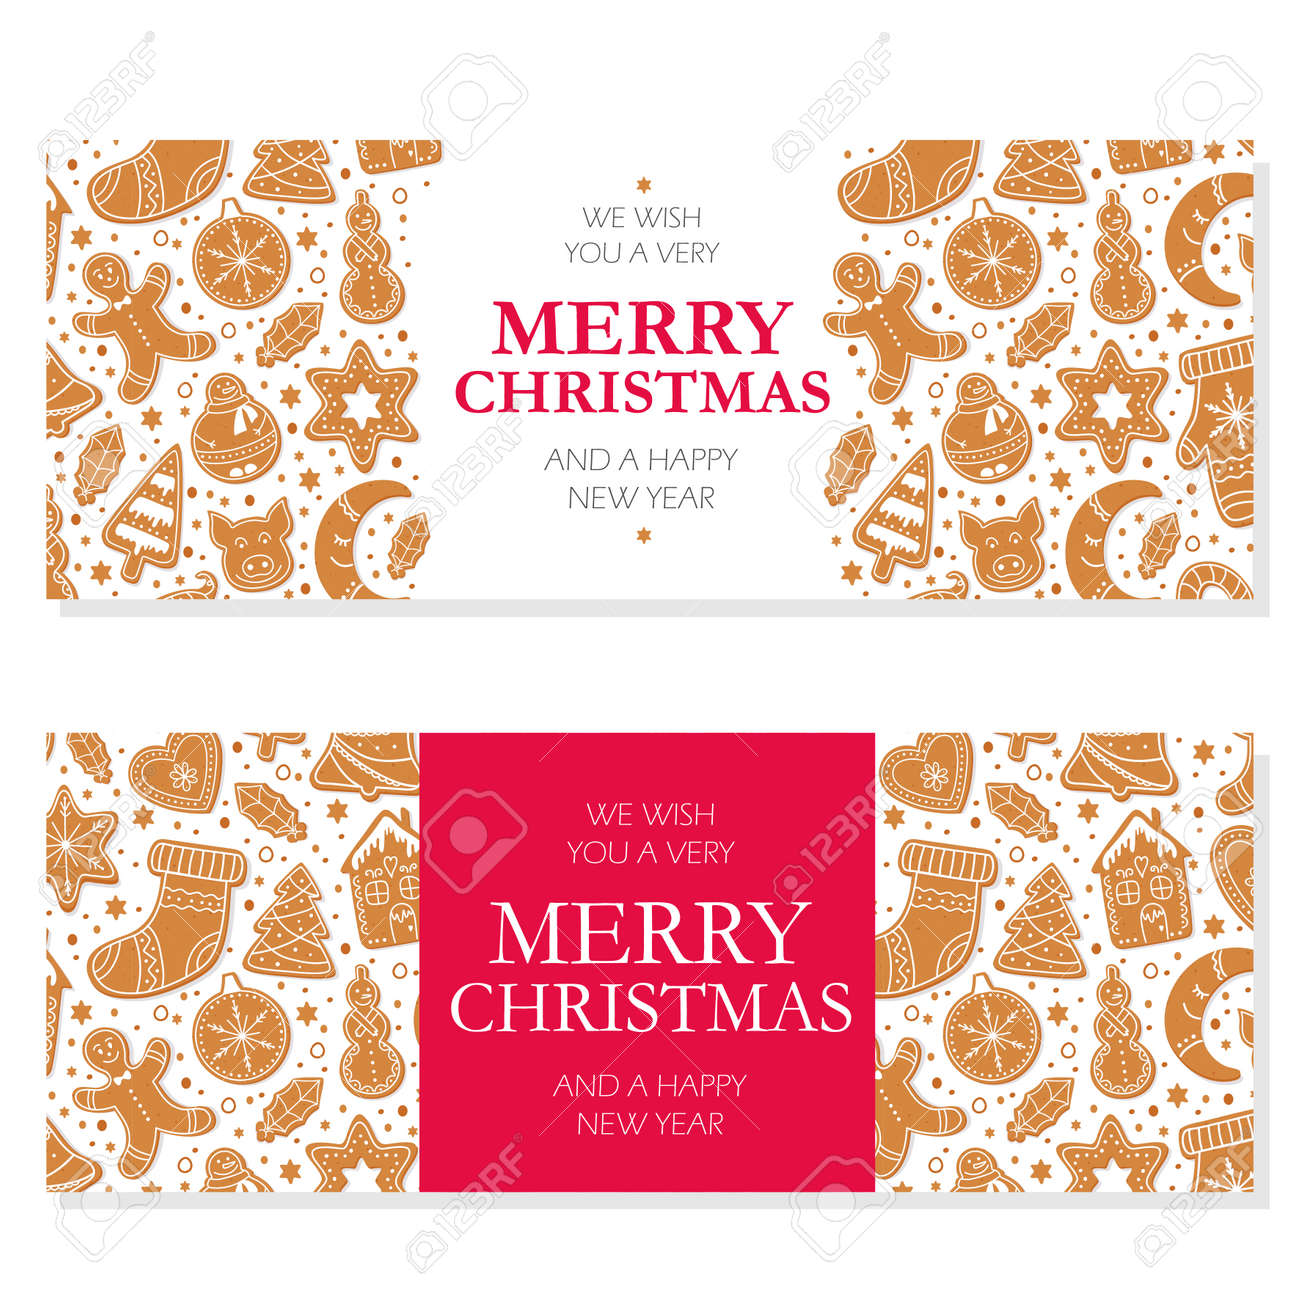 Invitation merry christmas banner and card design template. Homemade gingerbread cookies figures of snowman,